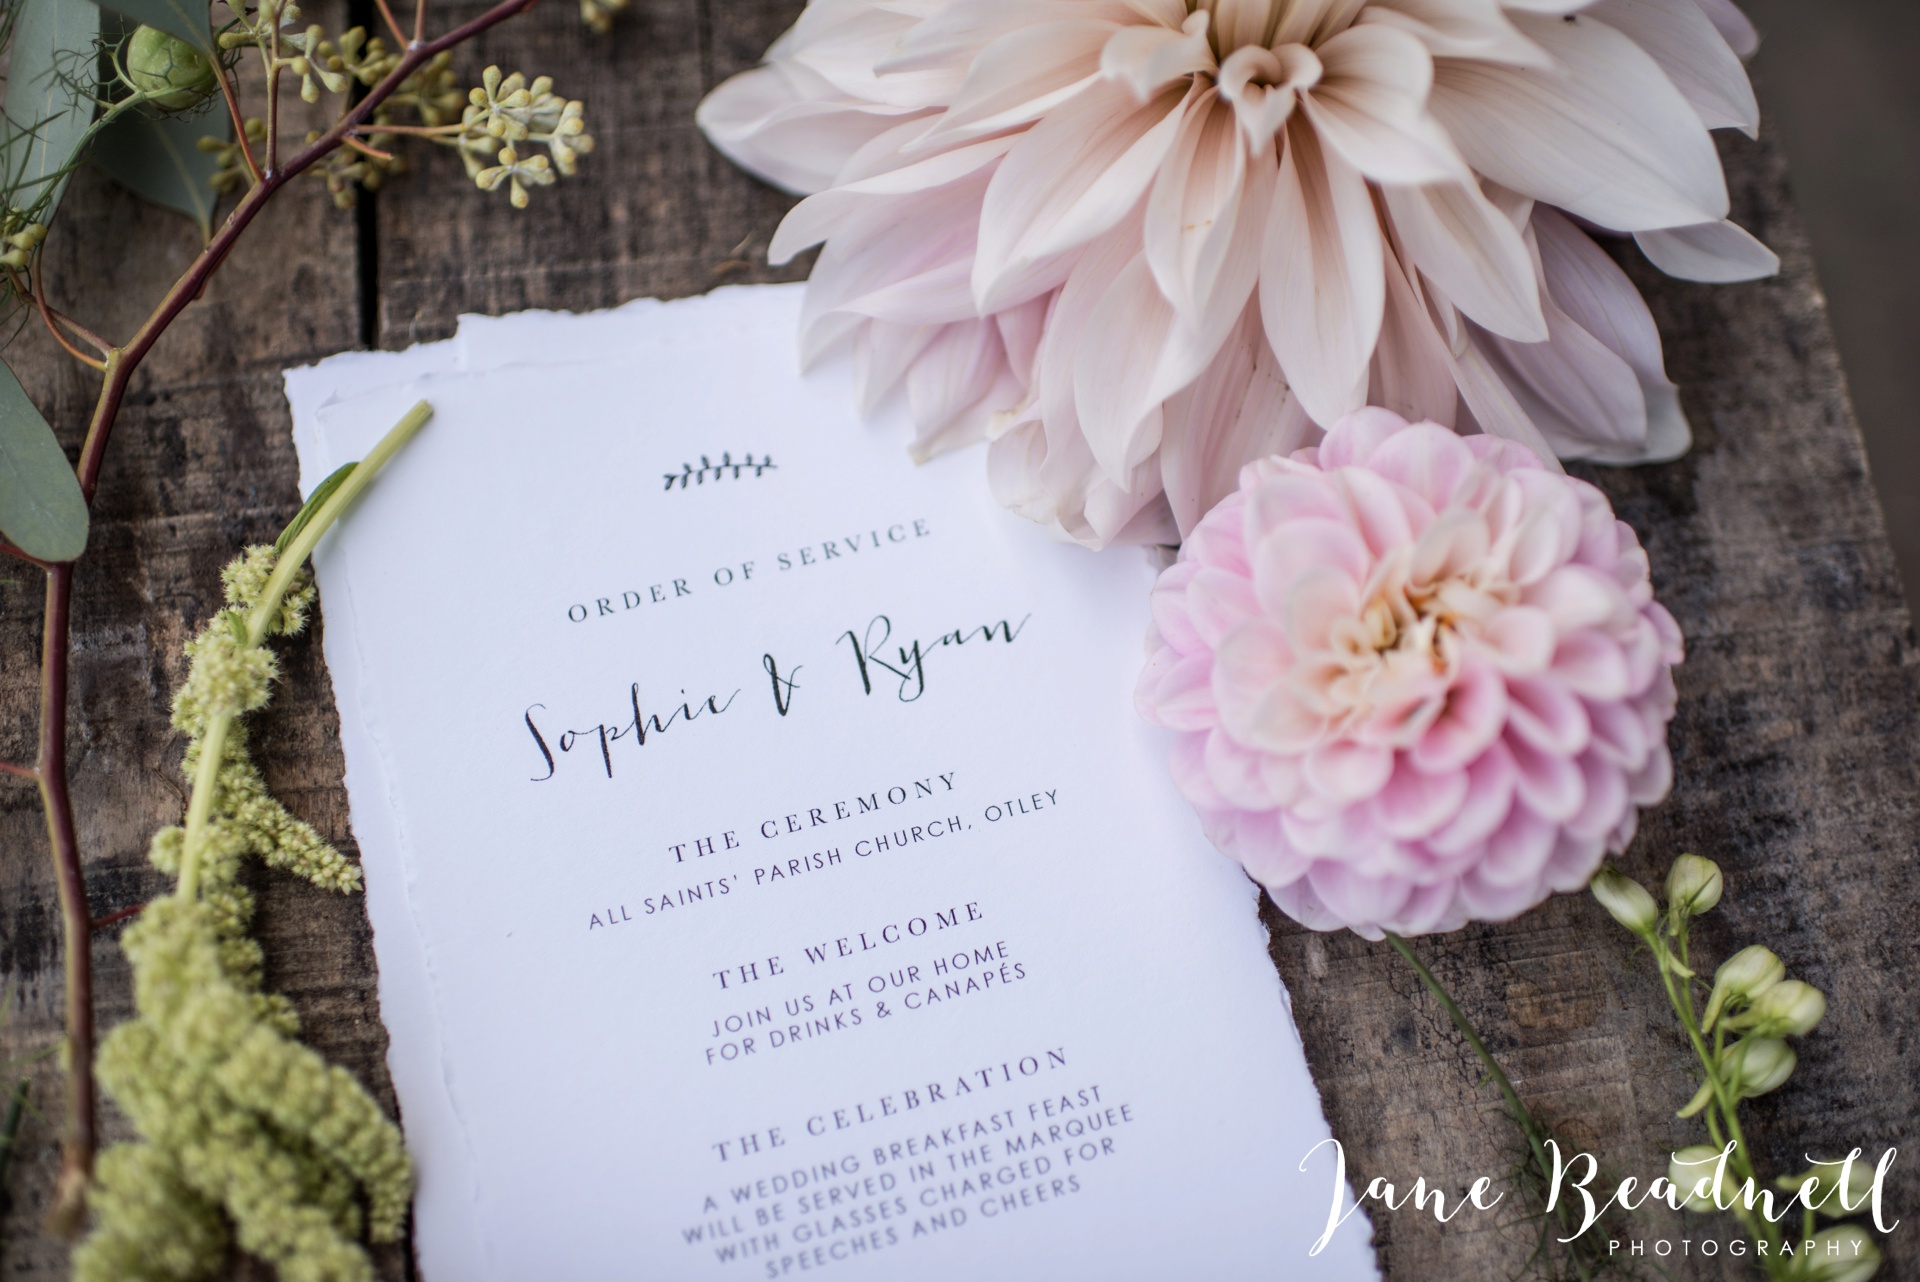 yorkshire-fine-art-wedding-photographer-jane-beadnell-photography-with-leafy-couture-wedding-flowers_0033